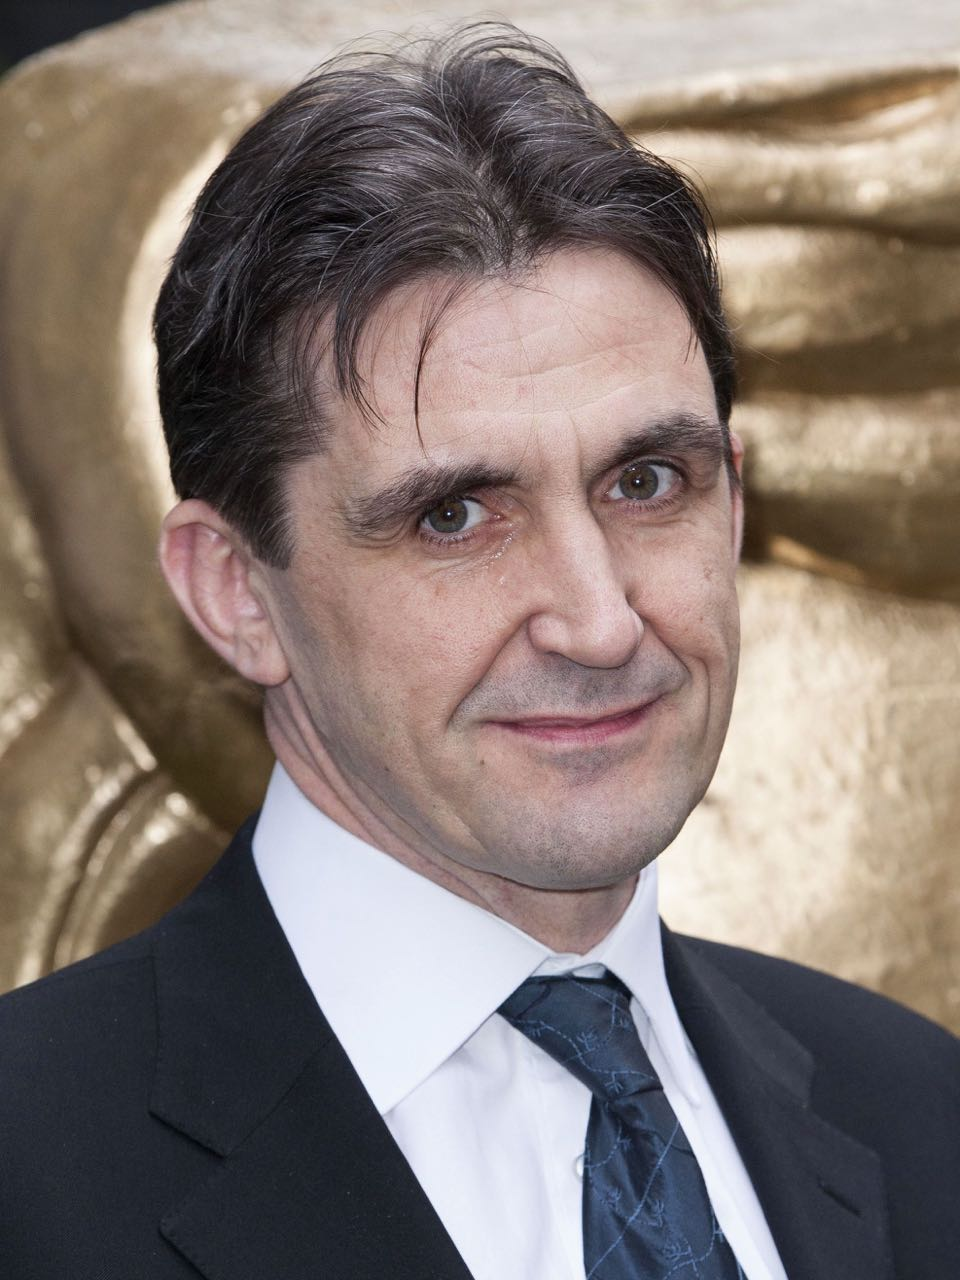 Stephen McGann (born 1963)